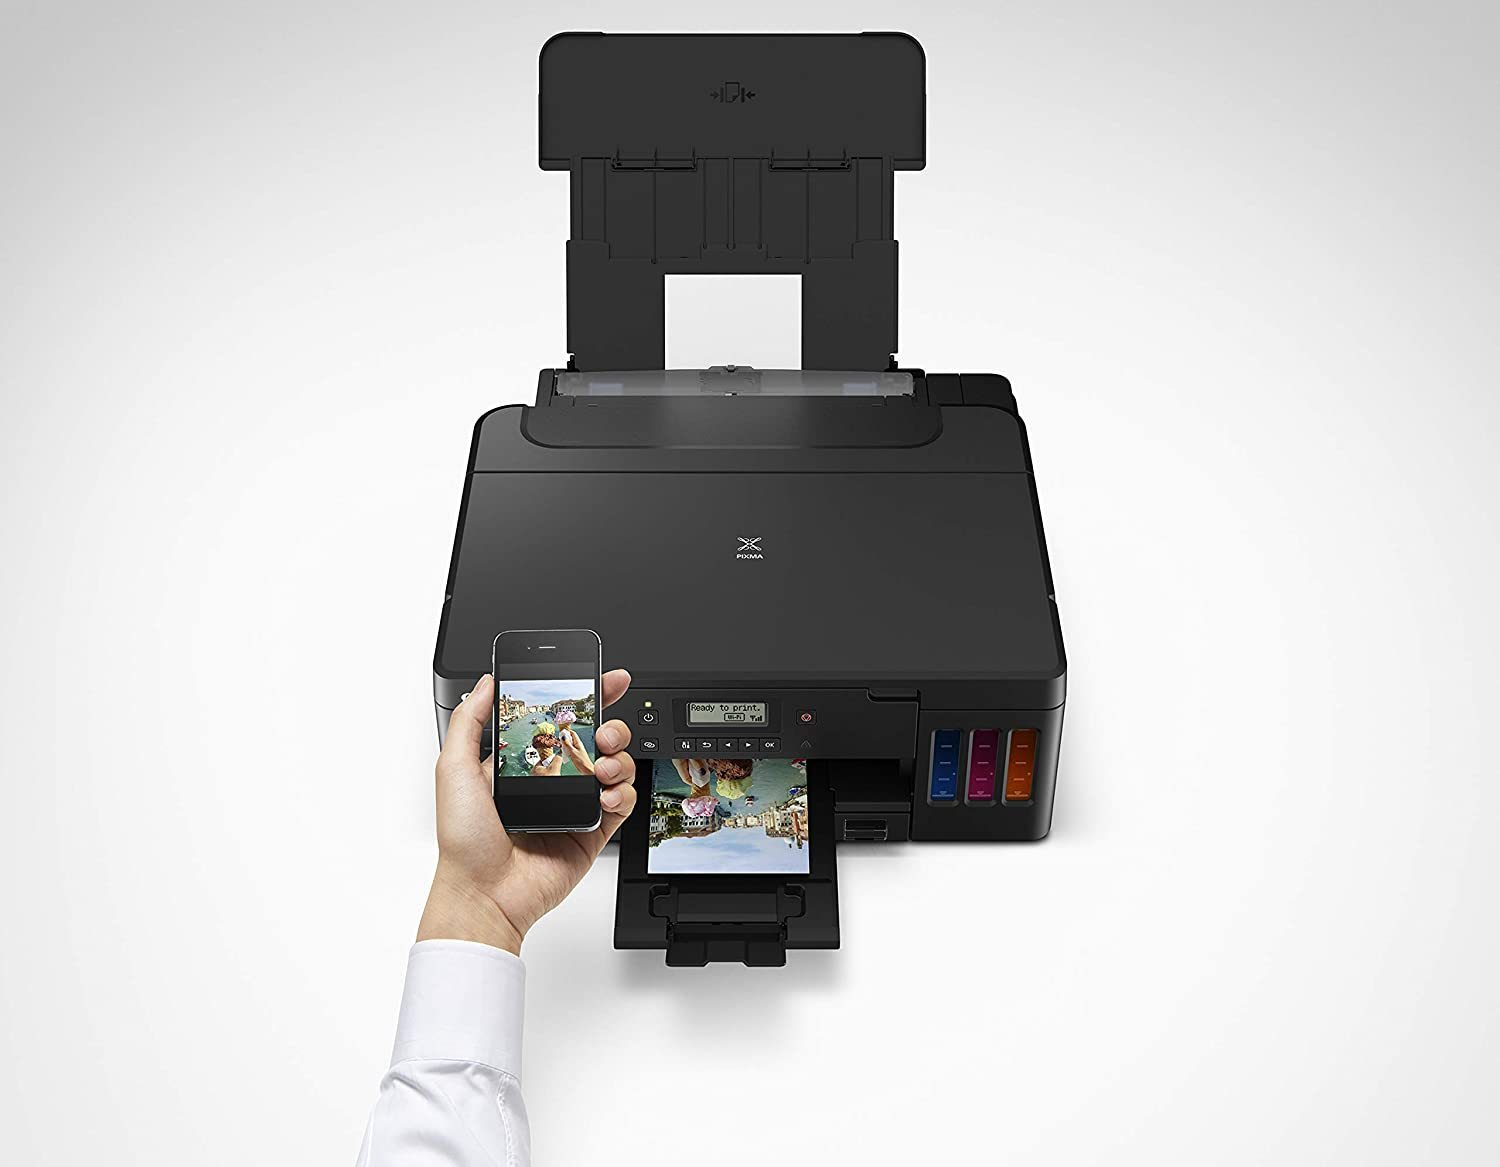 PIXMA G5020 Wireless MegaTank Single Function SuperTank Printer | Mobile & Auto 2-Sided Printing